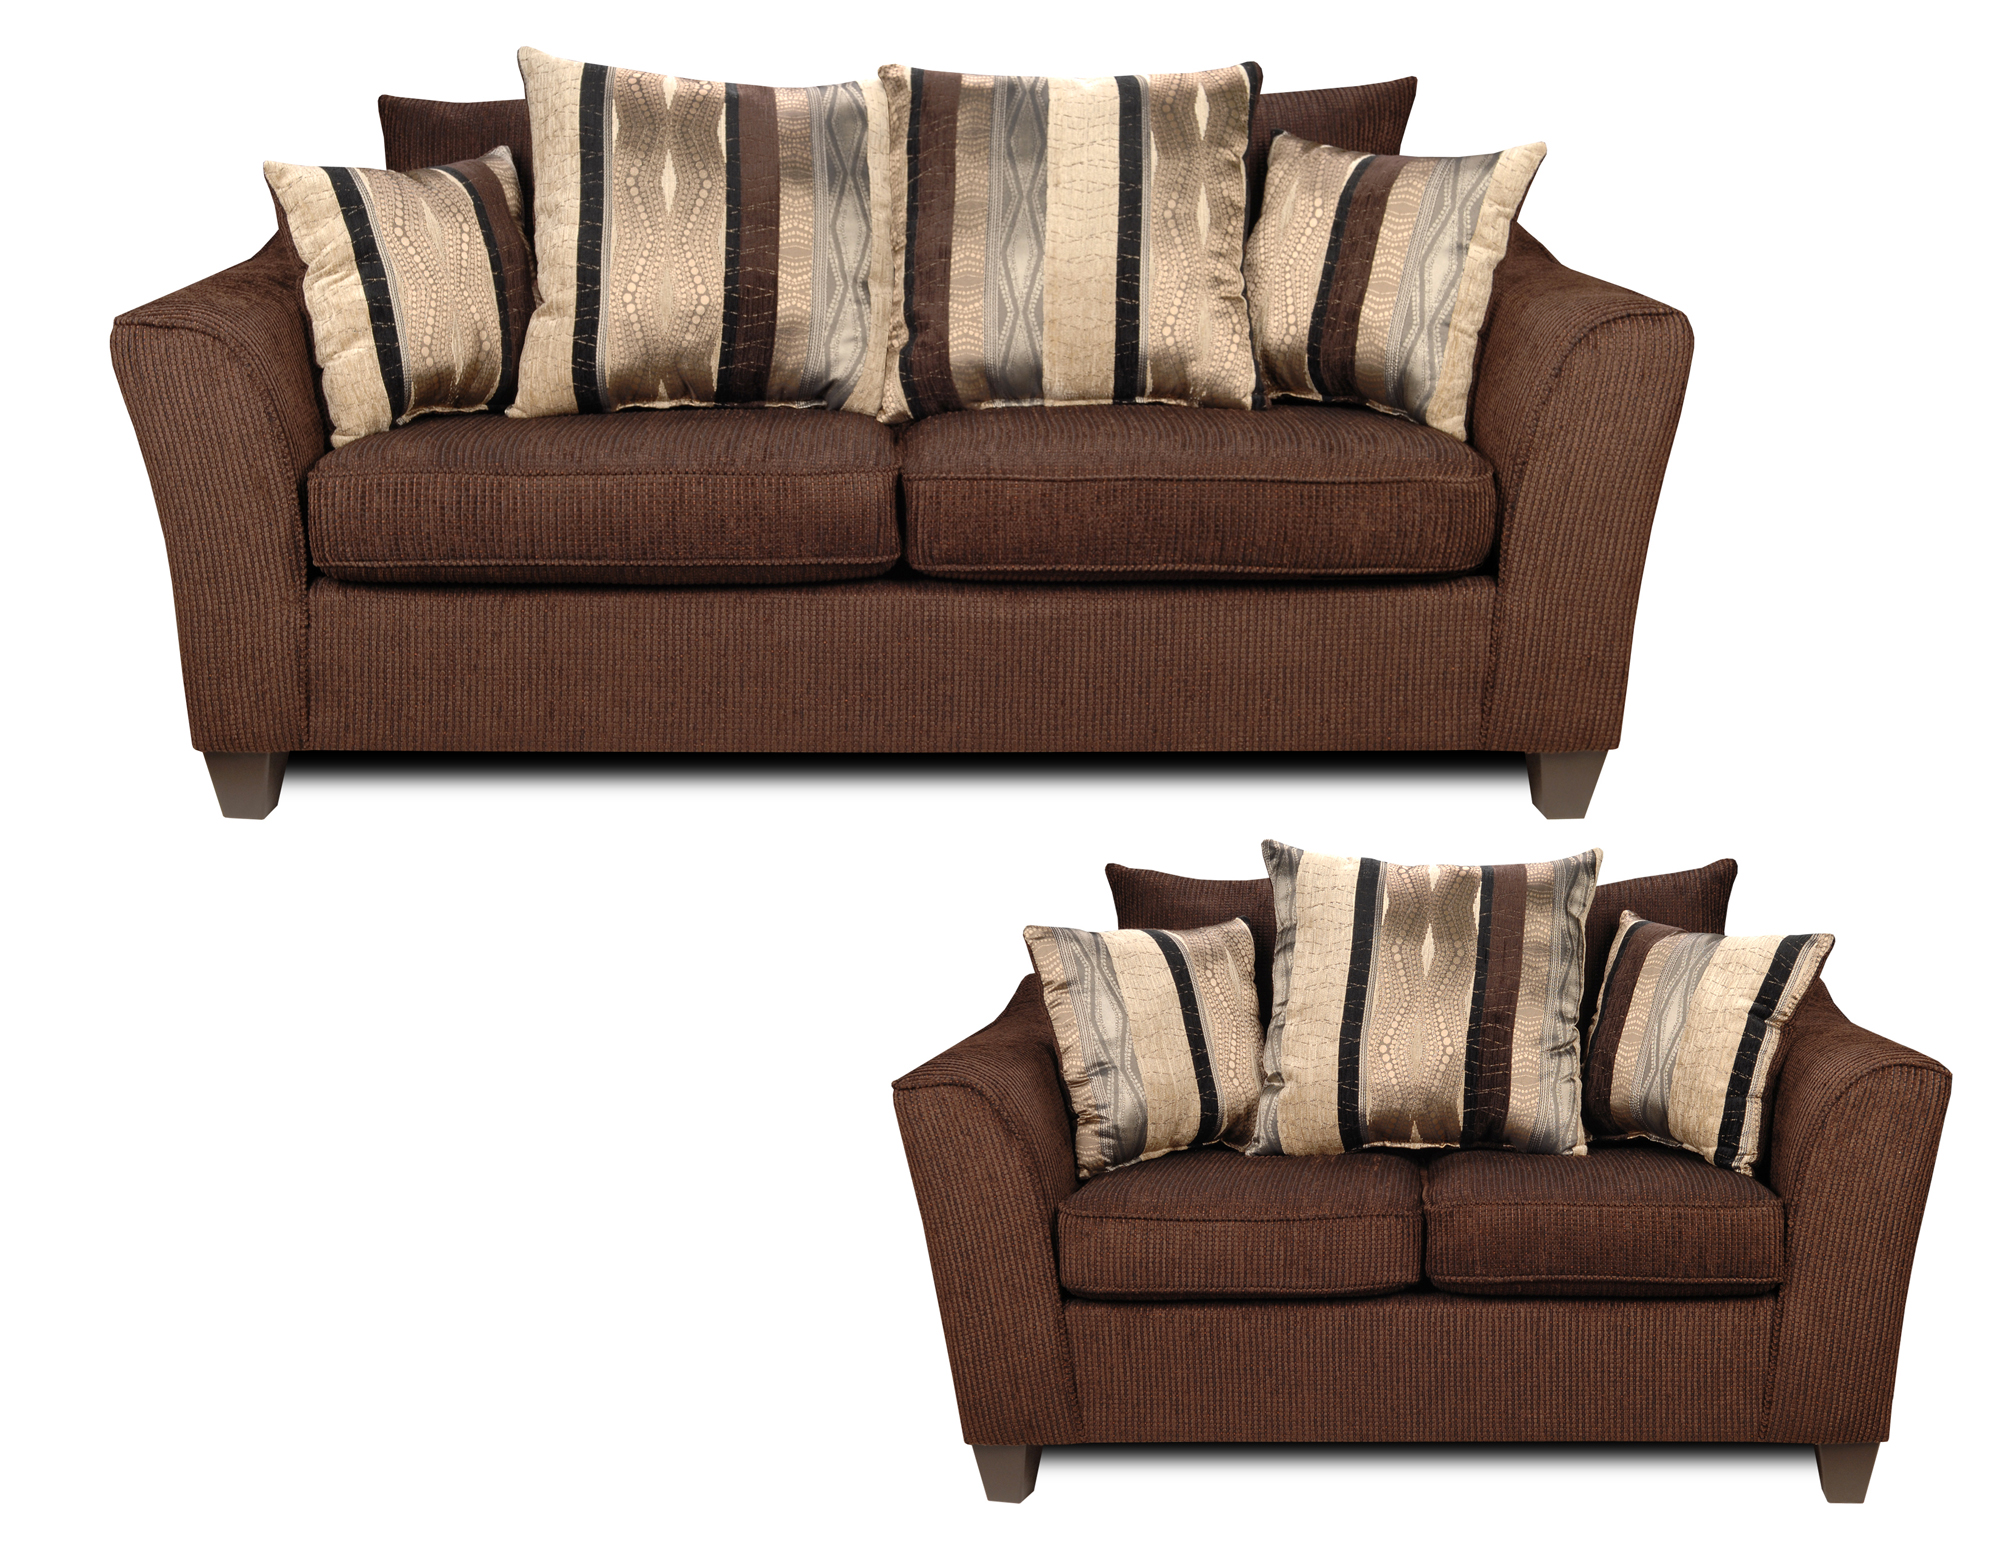 Lizzy Sofa And Love Seat With Romance Brown Fabric 6950 S L By Liberty Upholstery Sofas